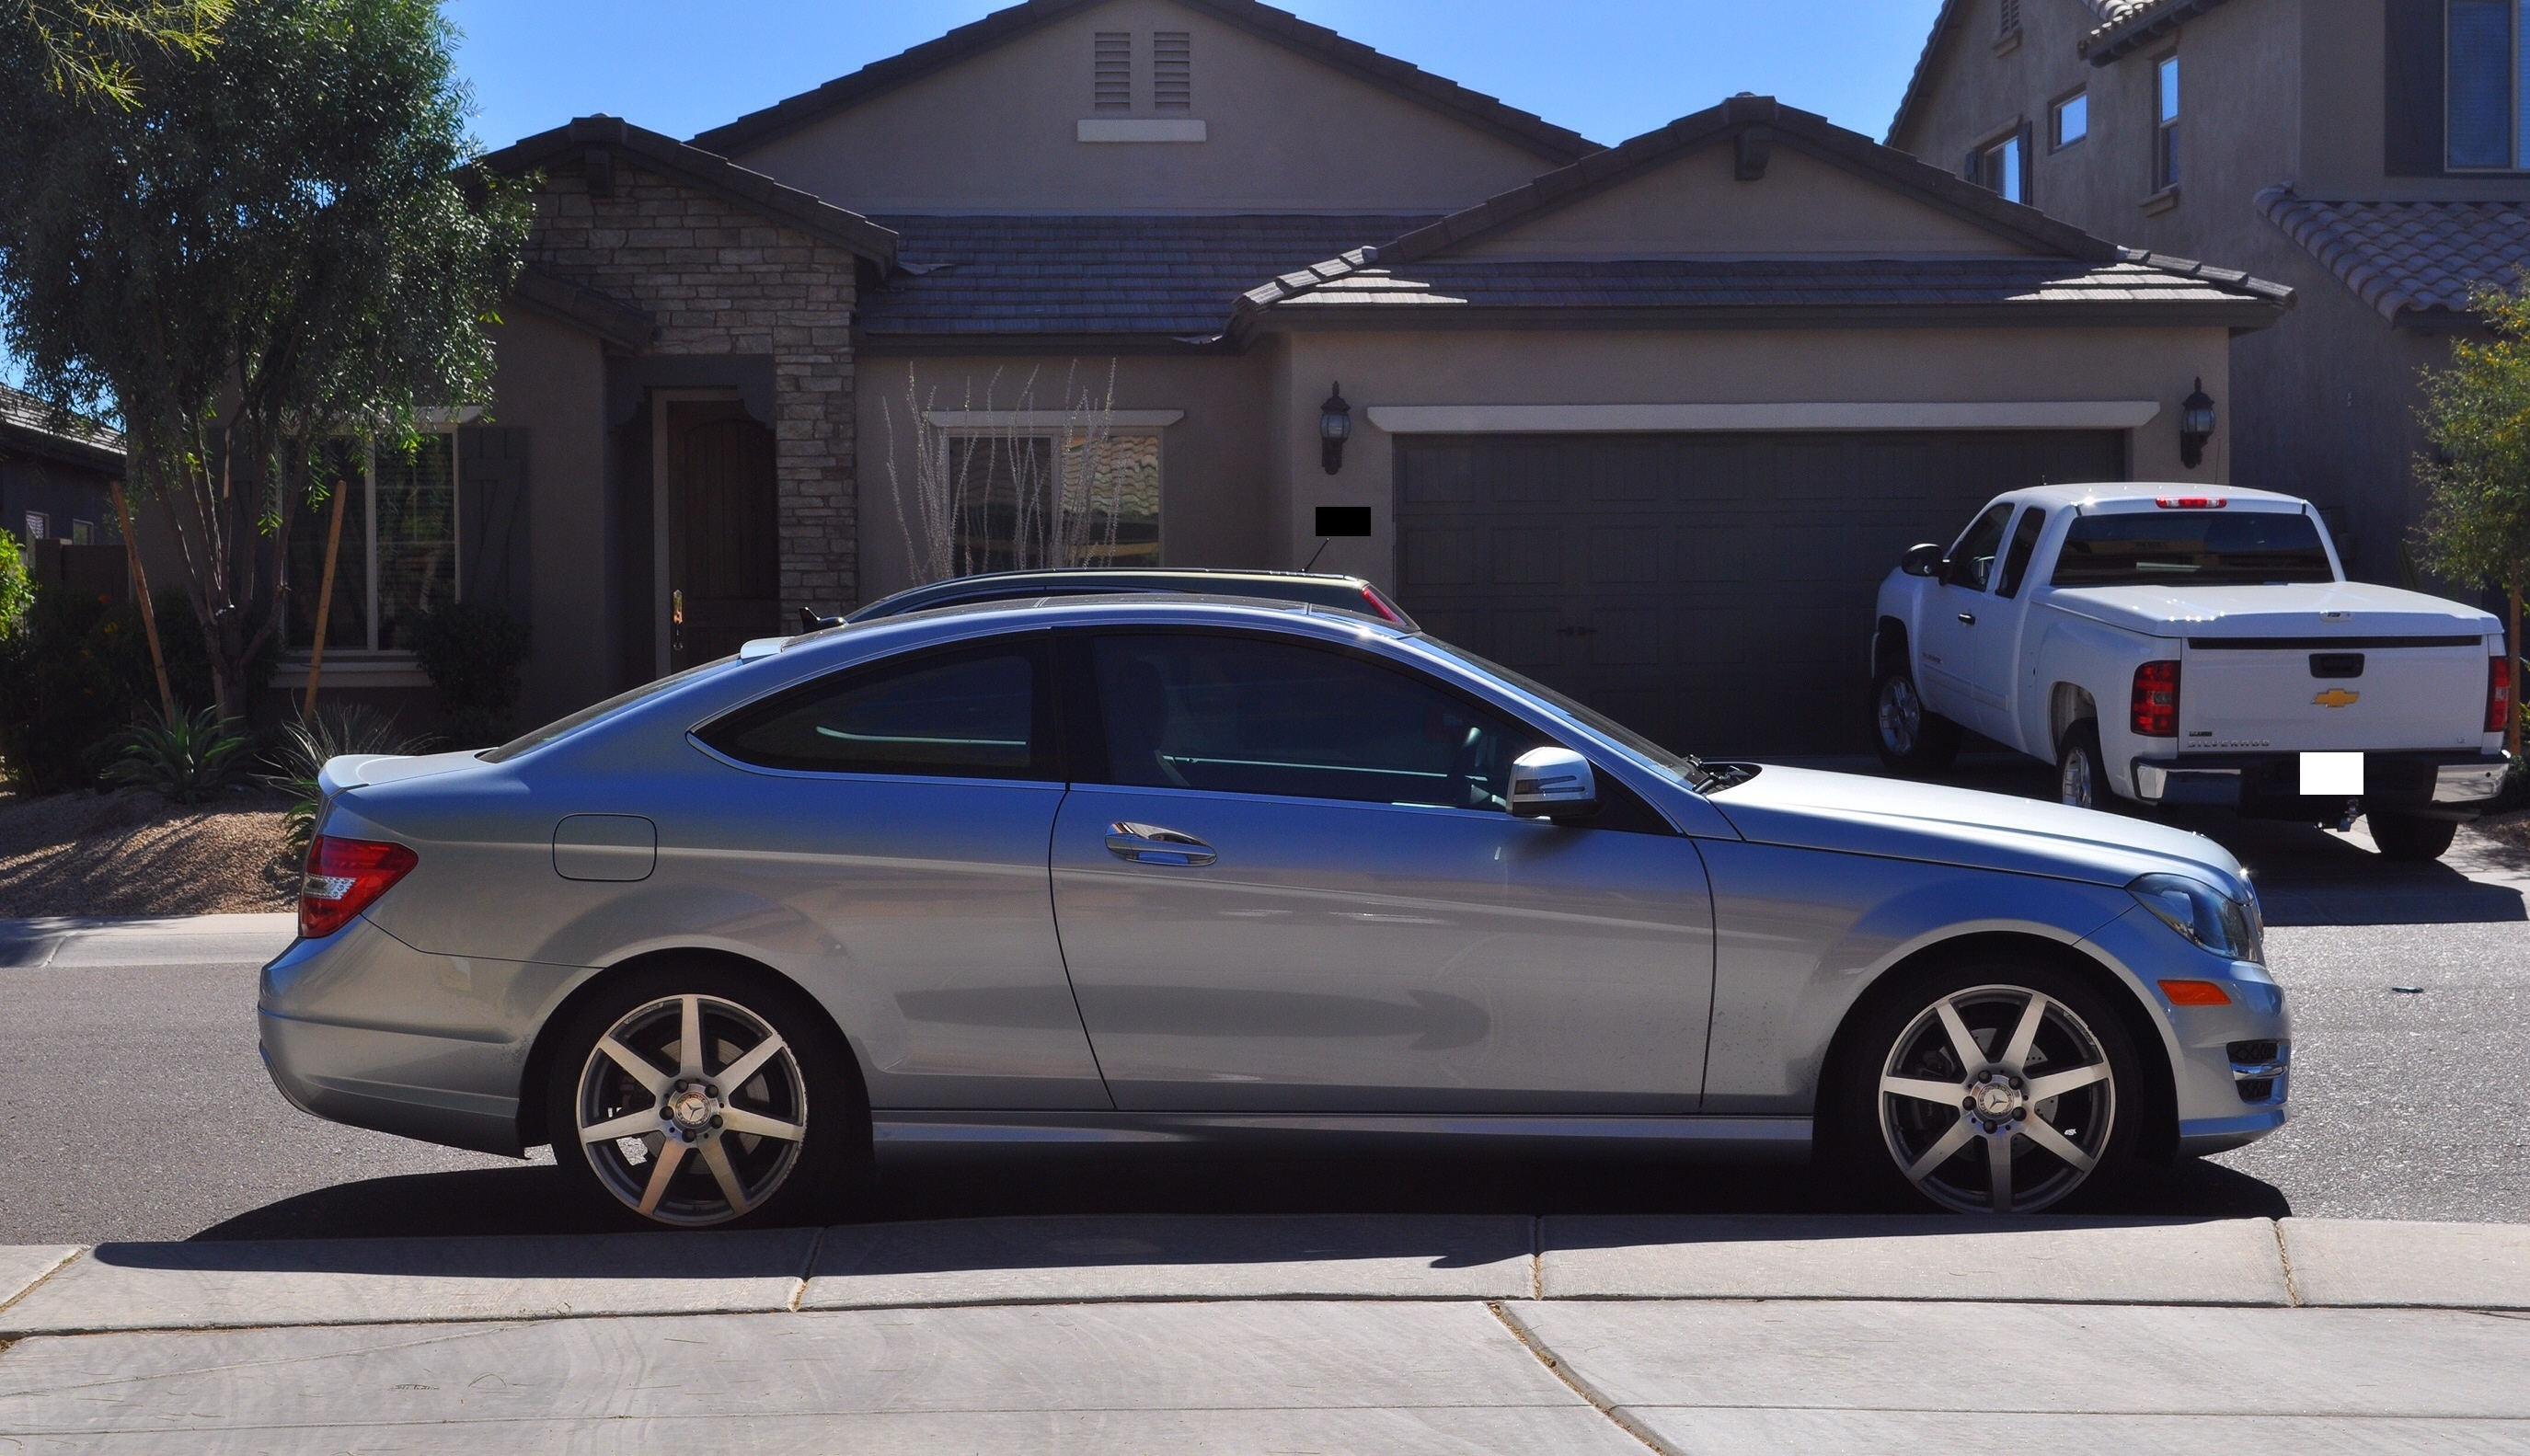 2012 mercedes benz c250 coupe review rnr automotive blog. Black Bedroom Furniture Sets. Home Design Ideas